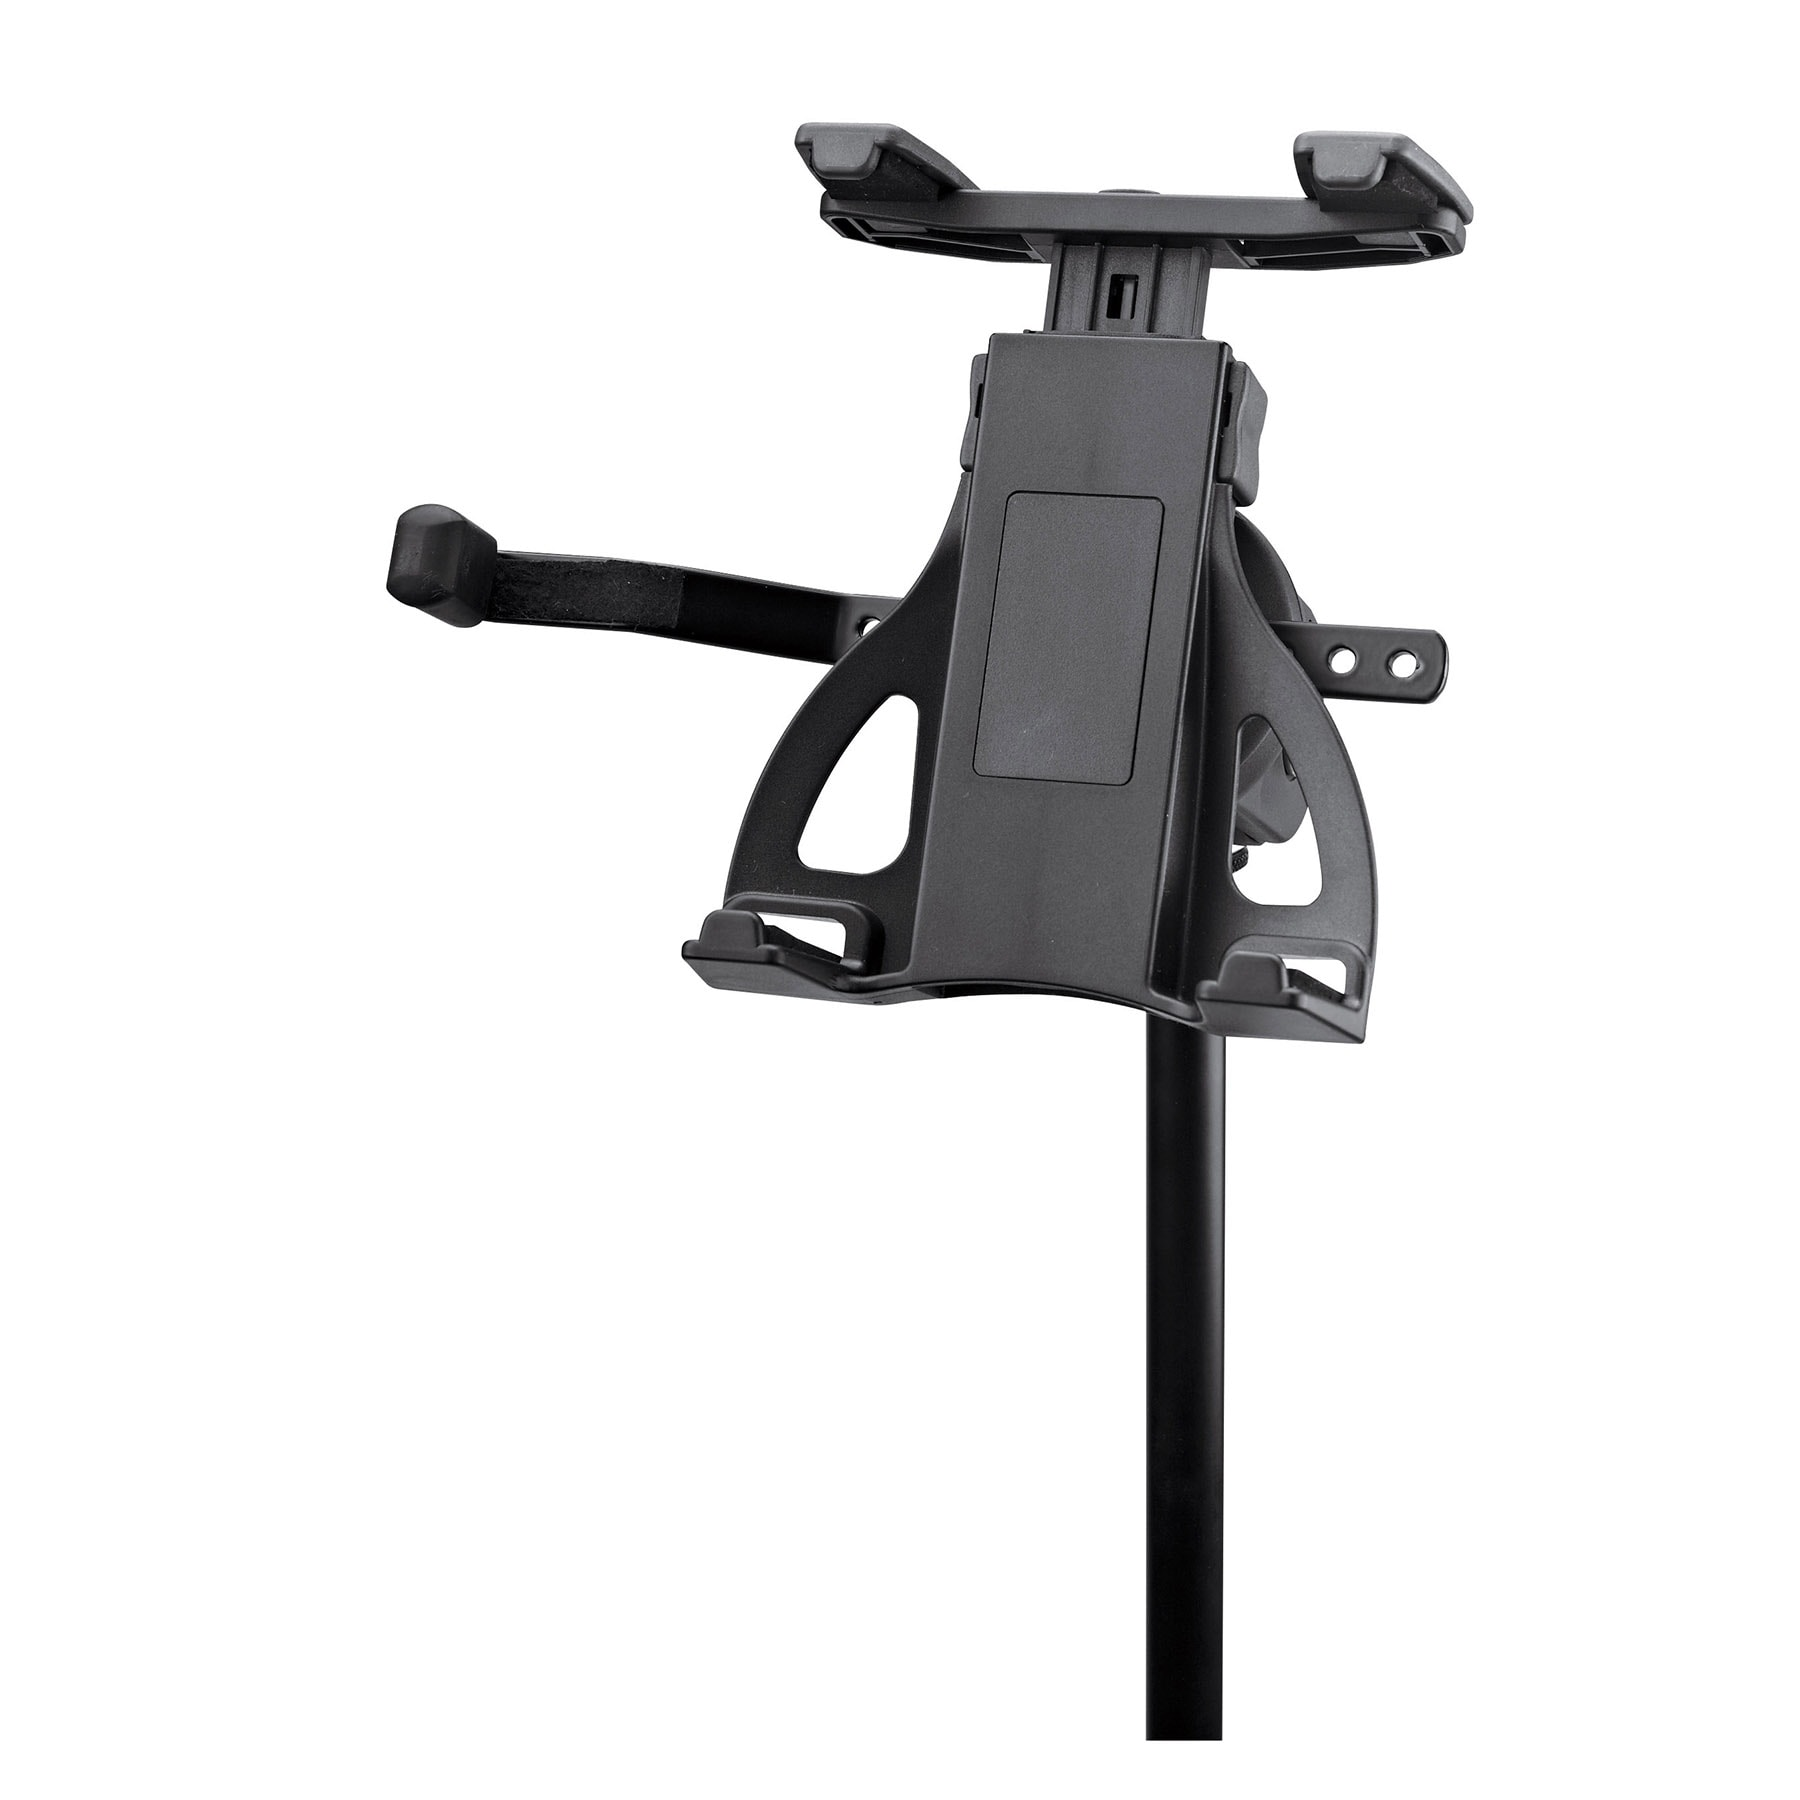 KM19742 - Tablet pc stand holder